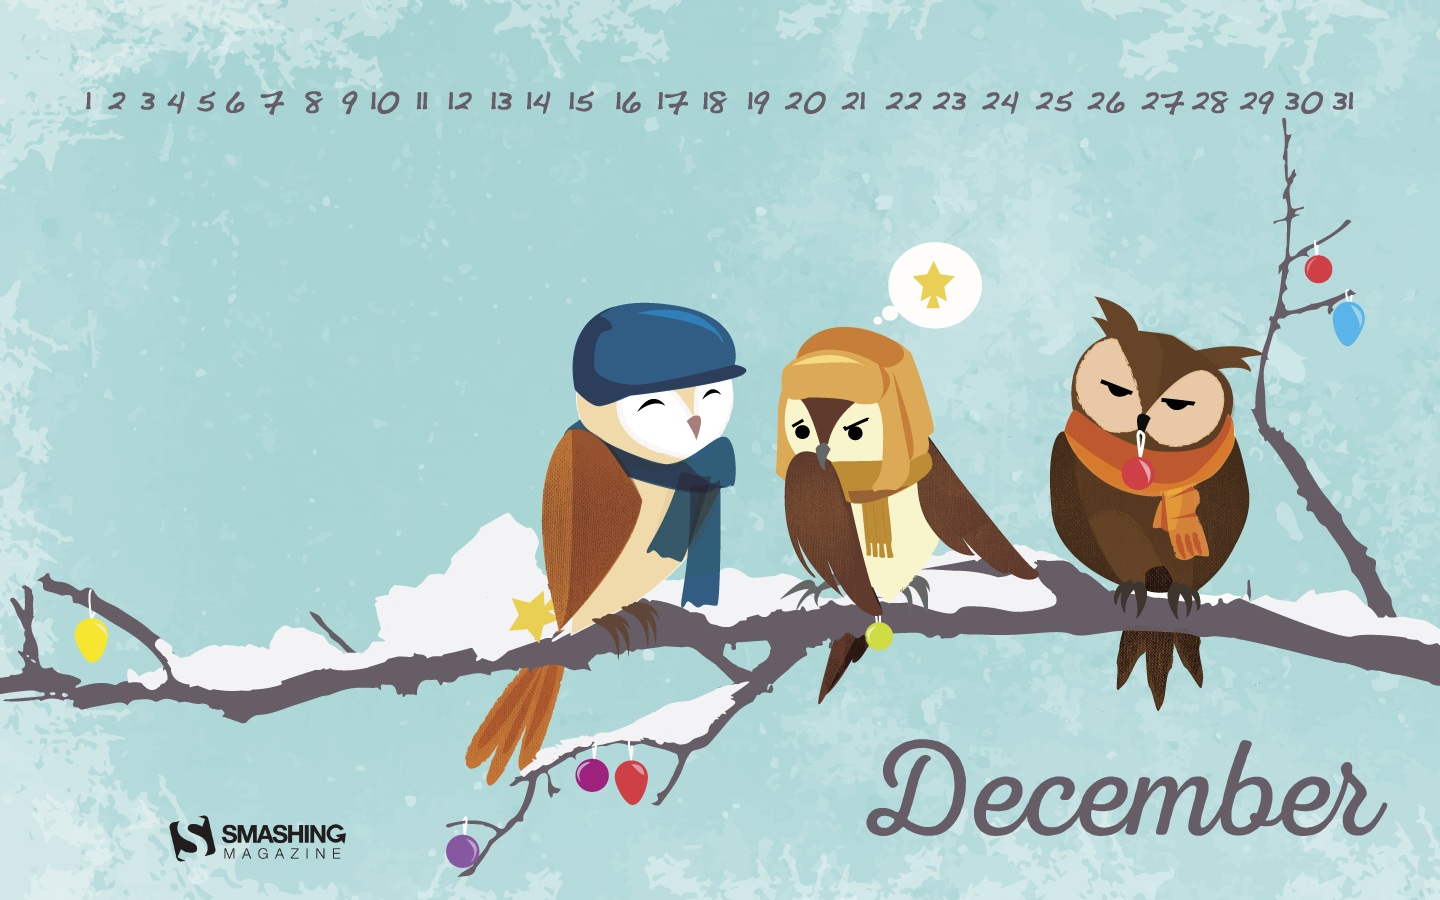 In January Calendar Wallpaper 51186